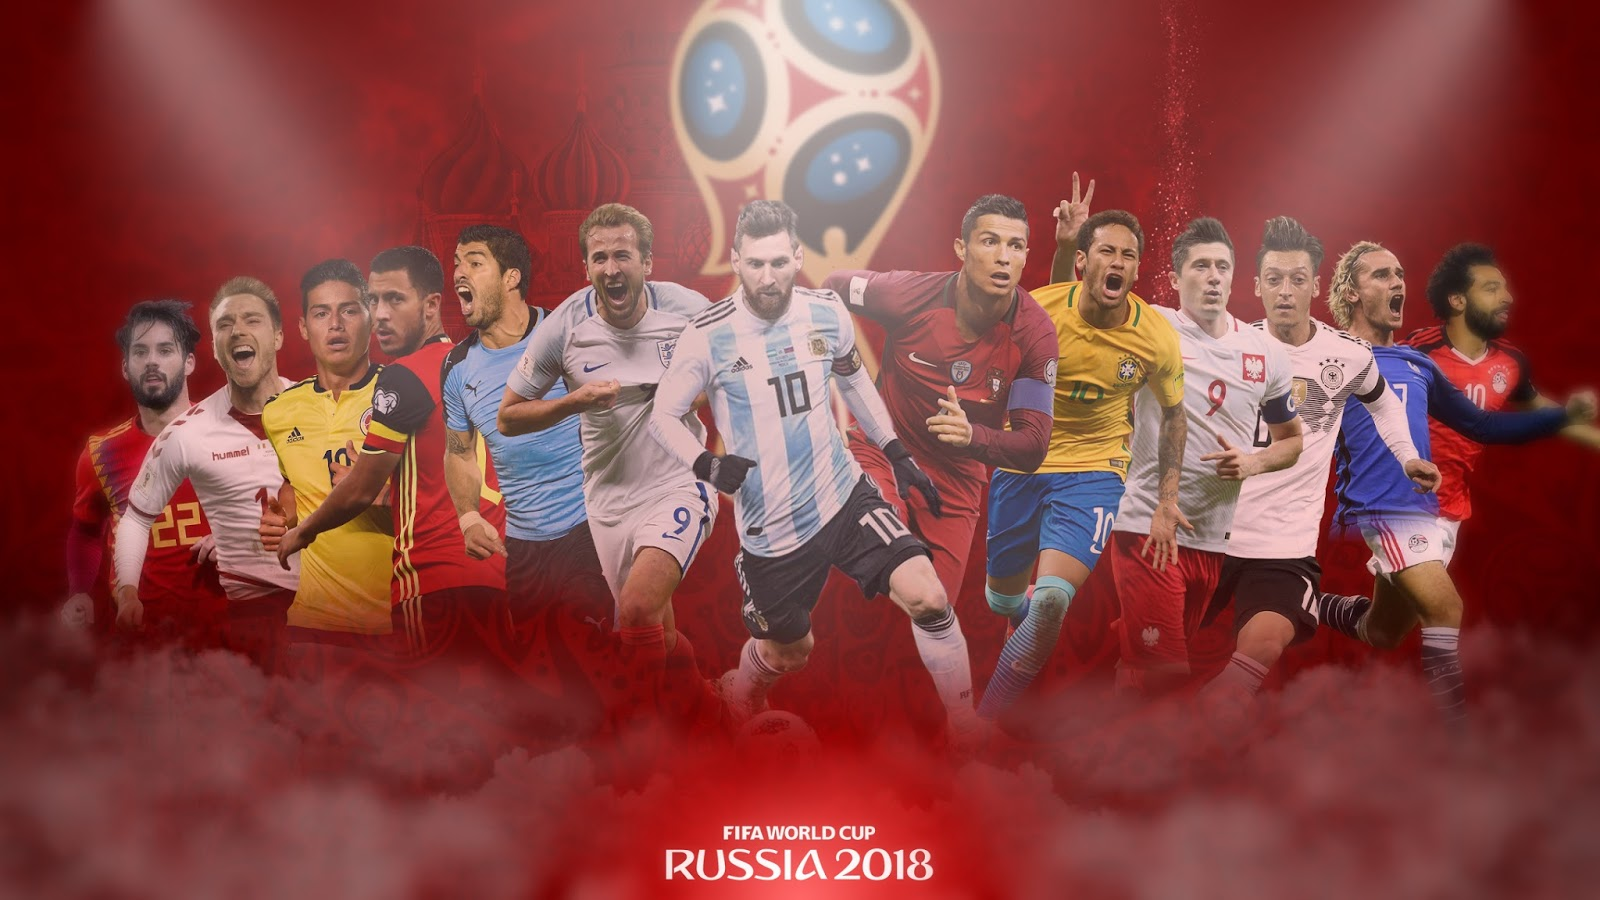 1600x900 - FIFA World Cup 2018 Wallpapers 21